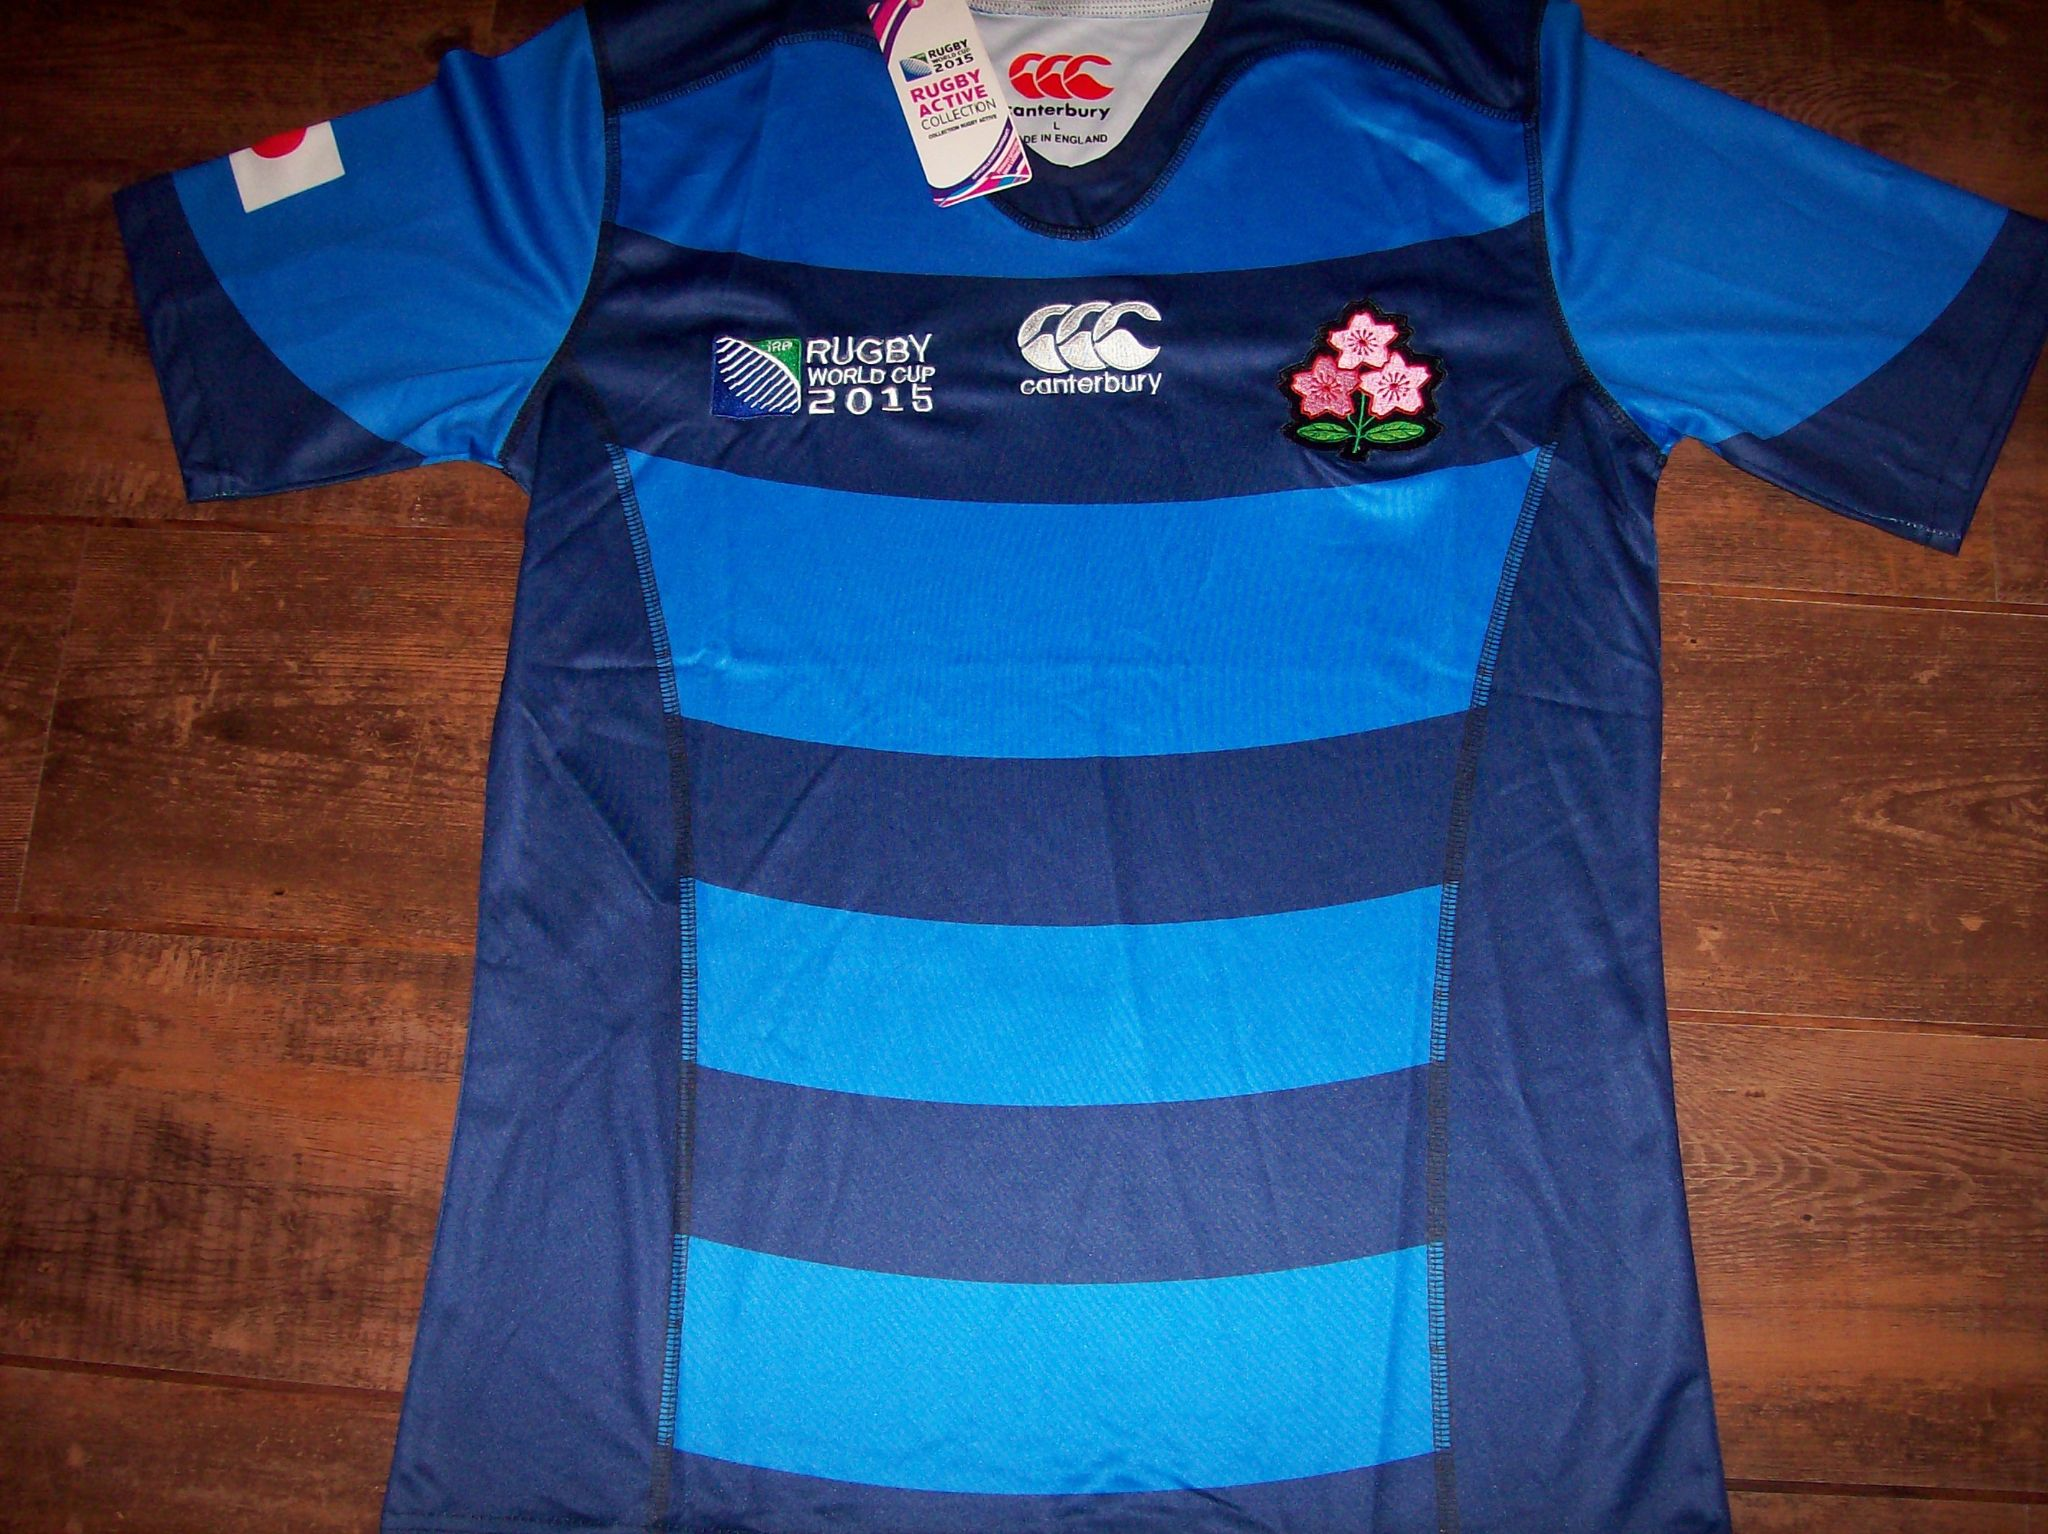 lowest price 82e3d 5b6f4 2015 Japan BNWT New World Cup Rugby Union Away Shirt Adults Large RWC